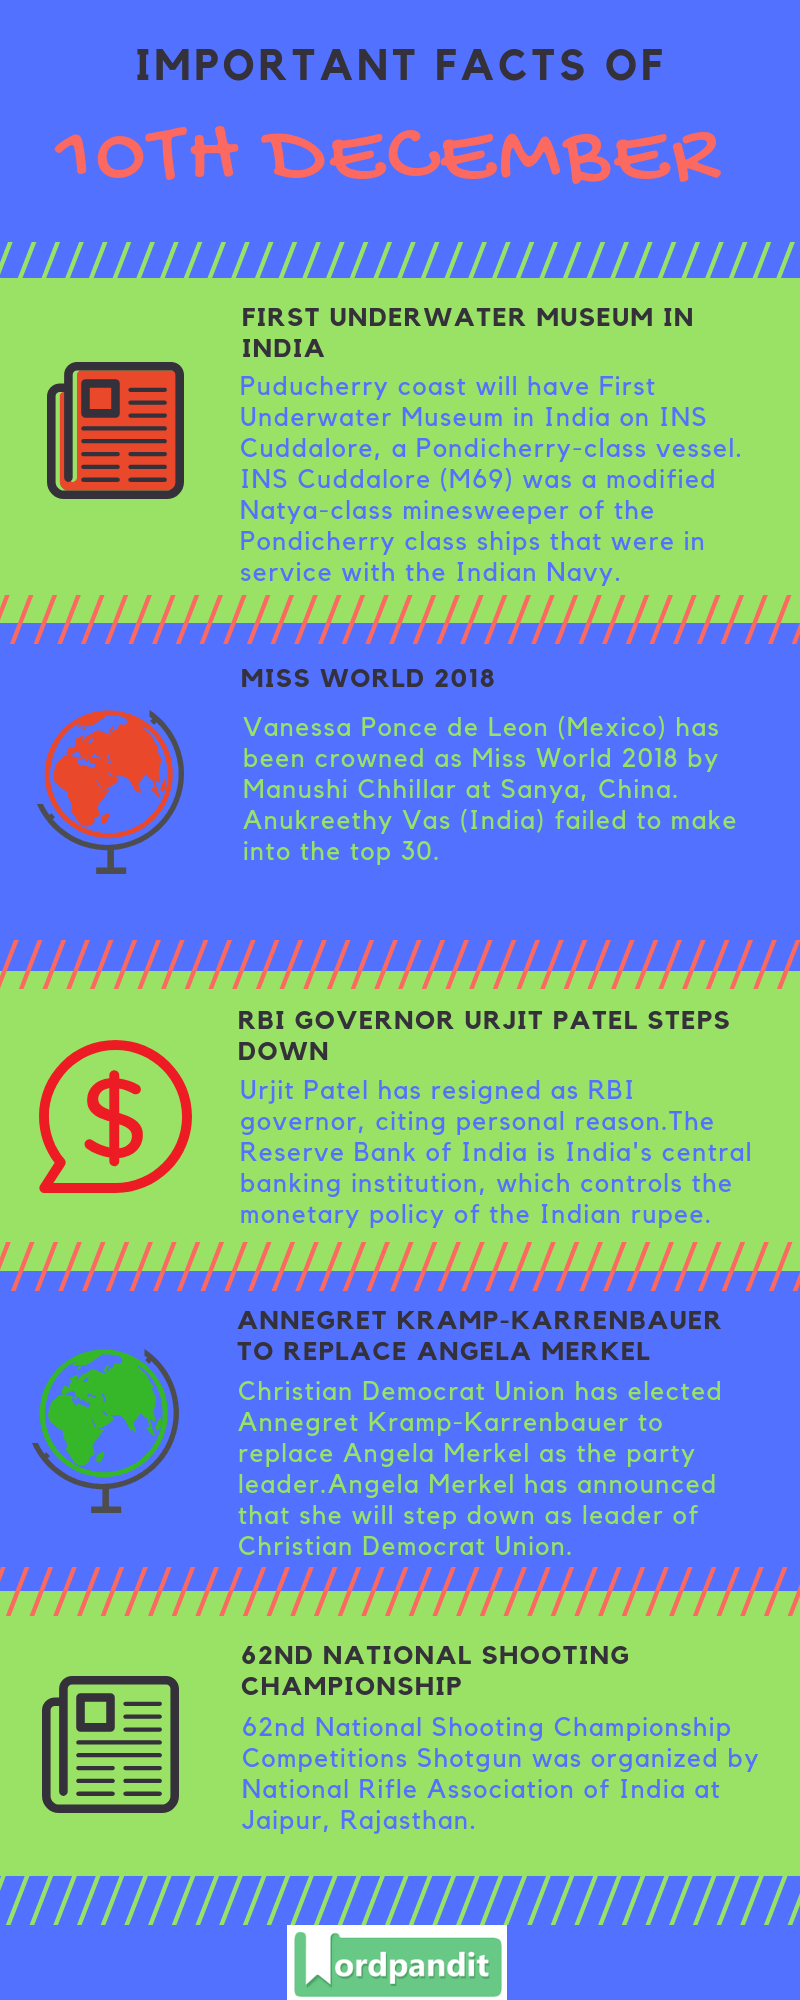 Daily Current Affairs 10 December 2018 Current Affairs Quiz 10 December 2018 Current Affairs Infographic